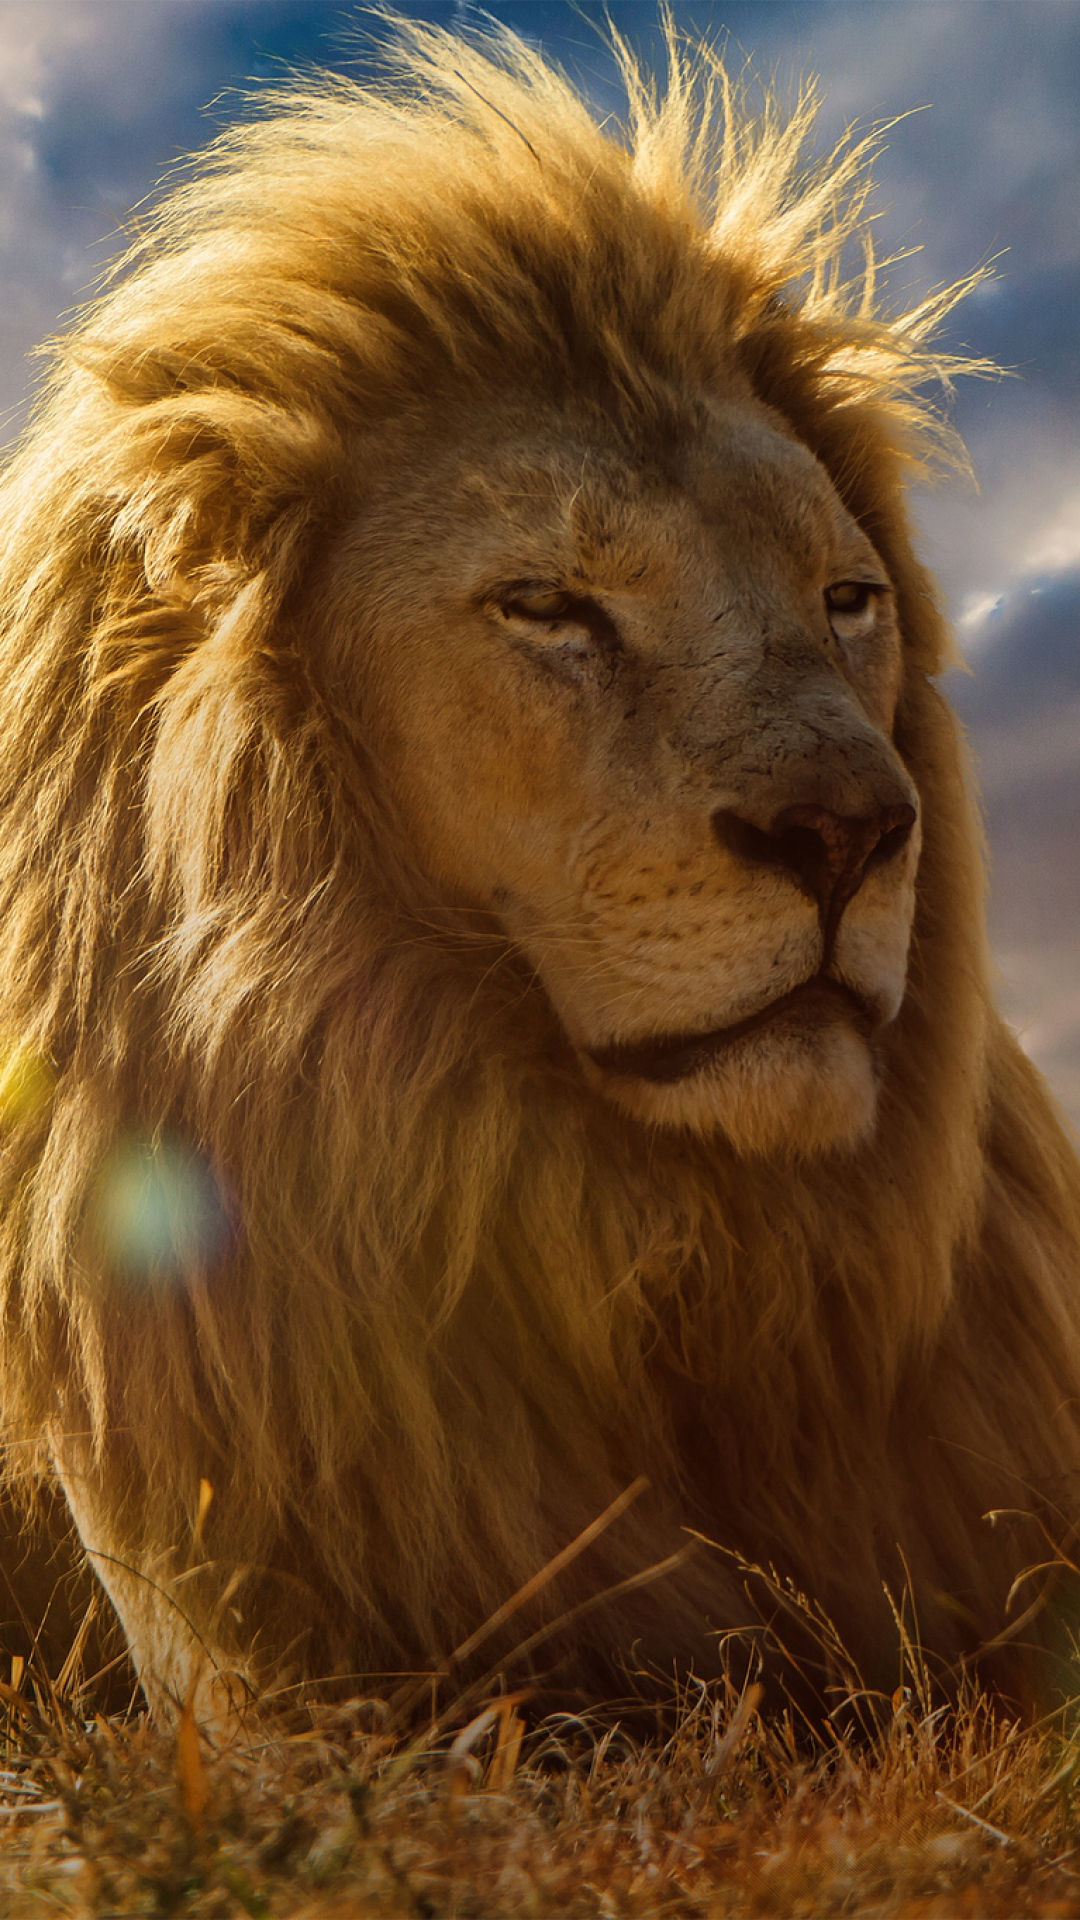 iphone wallpaper lion king Lion